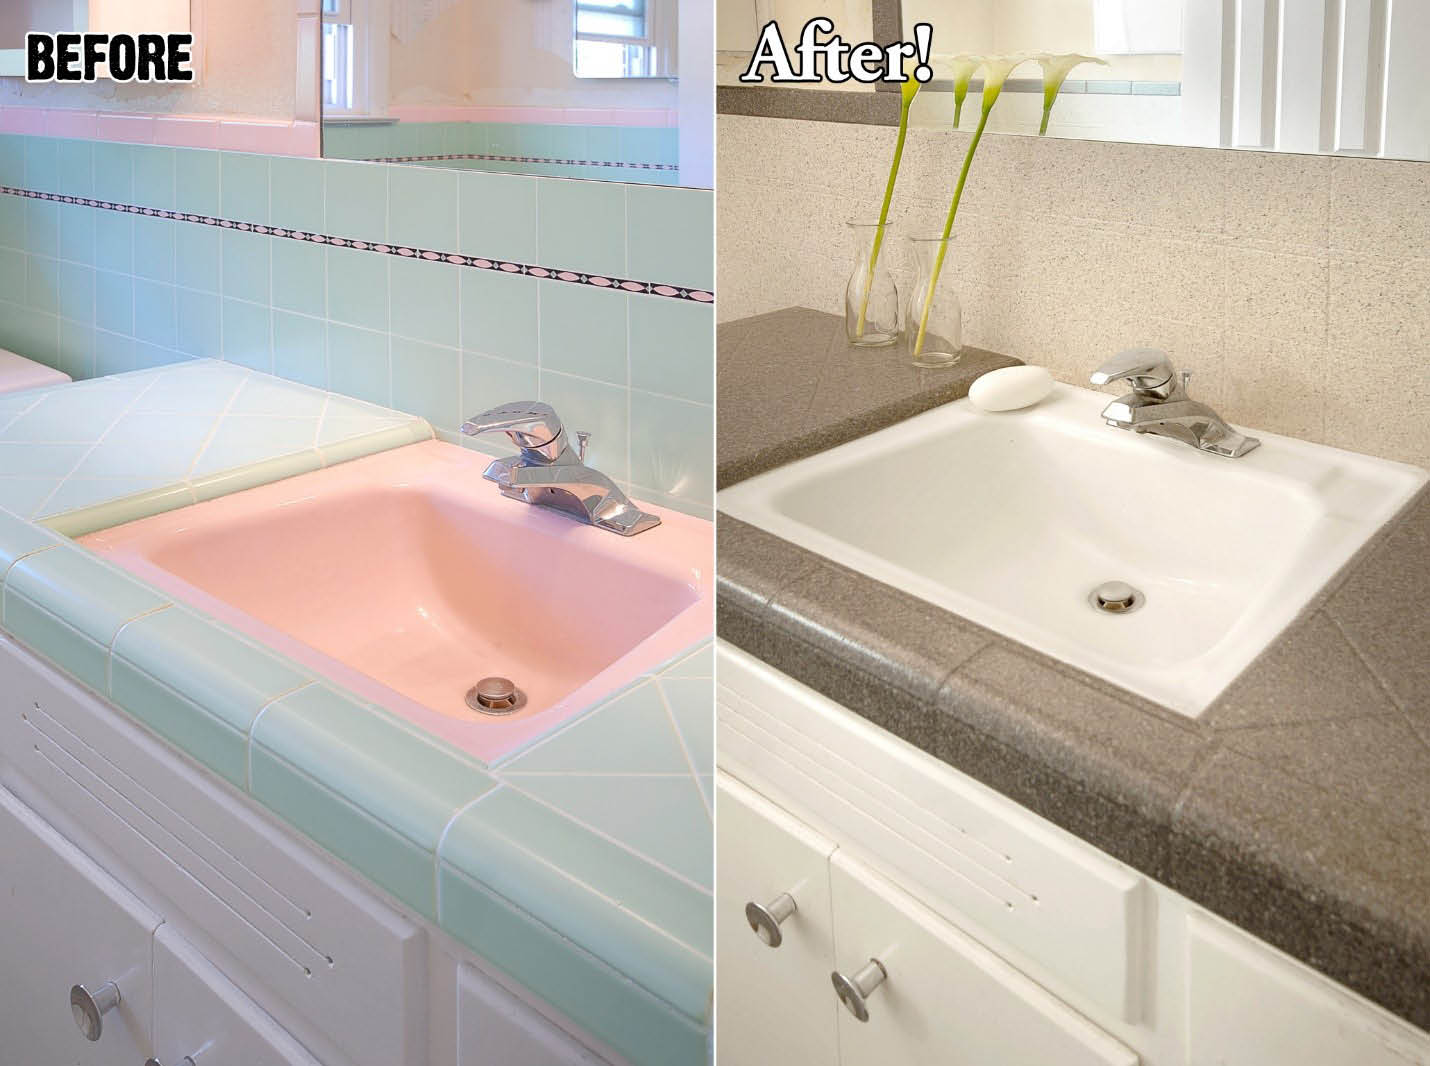 blue counters and pink sink refinished to cream by Miracle Method refinishing company in Savannah, GA